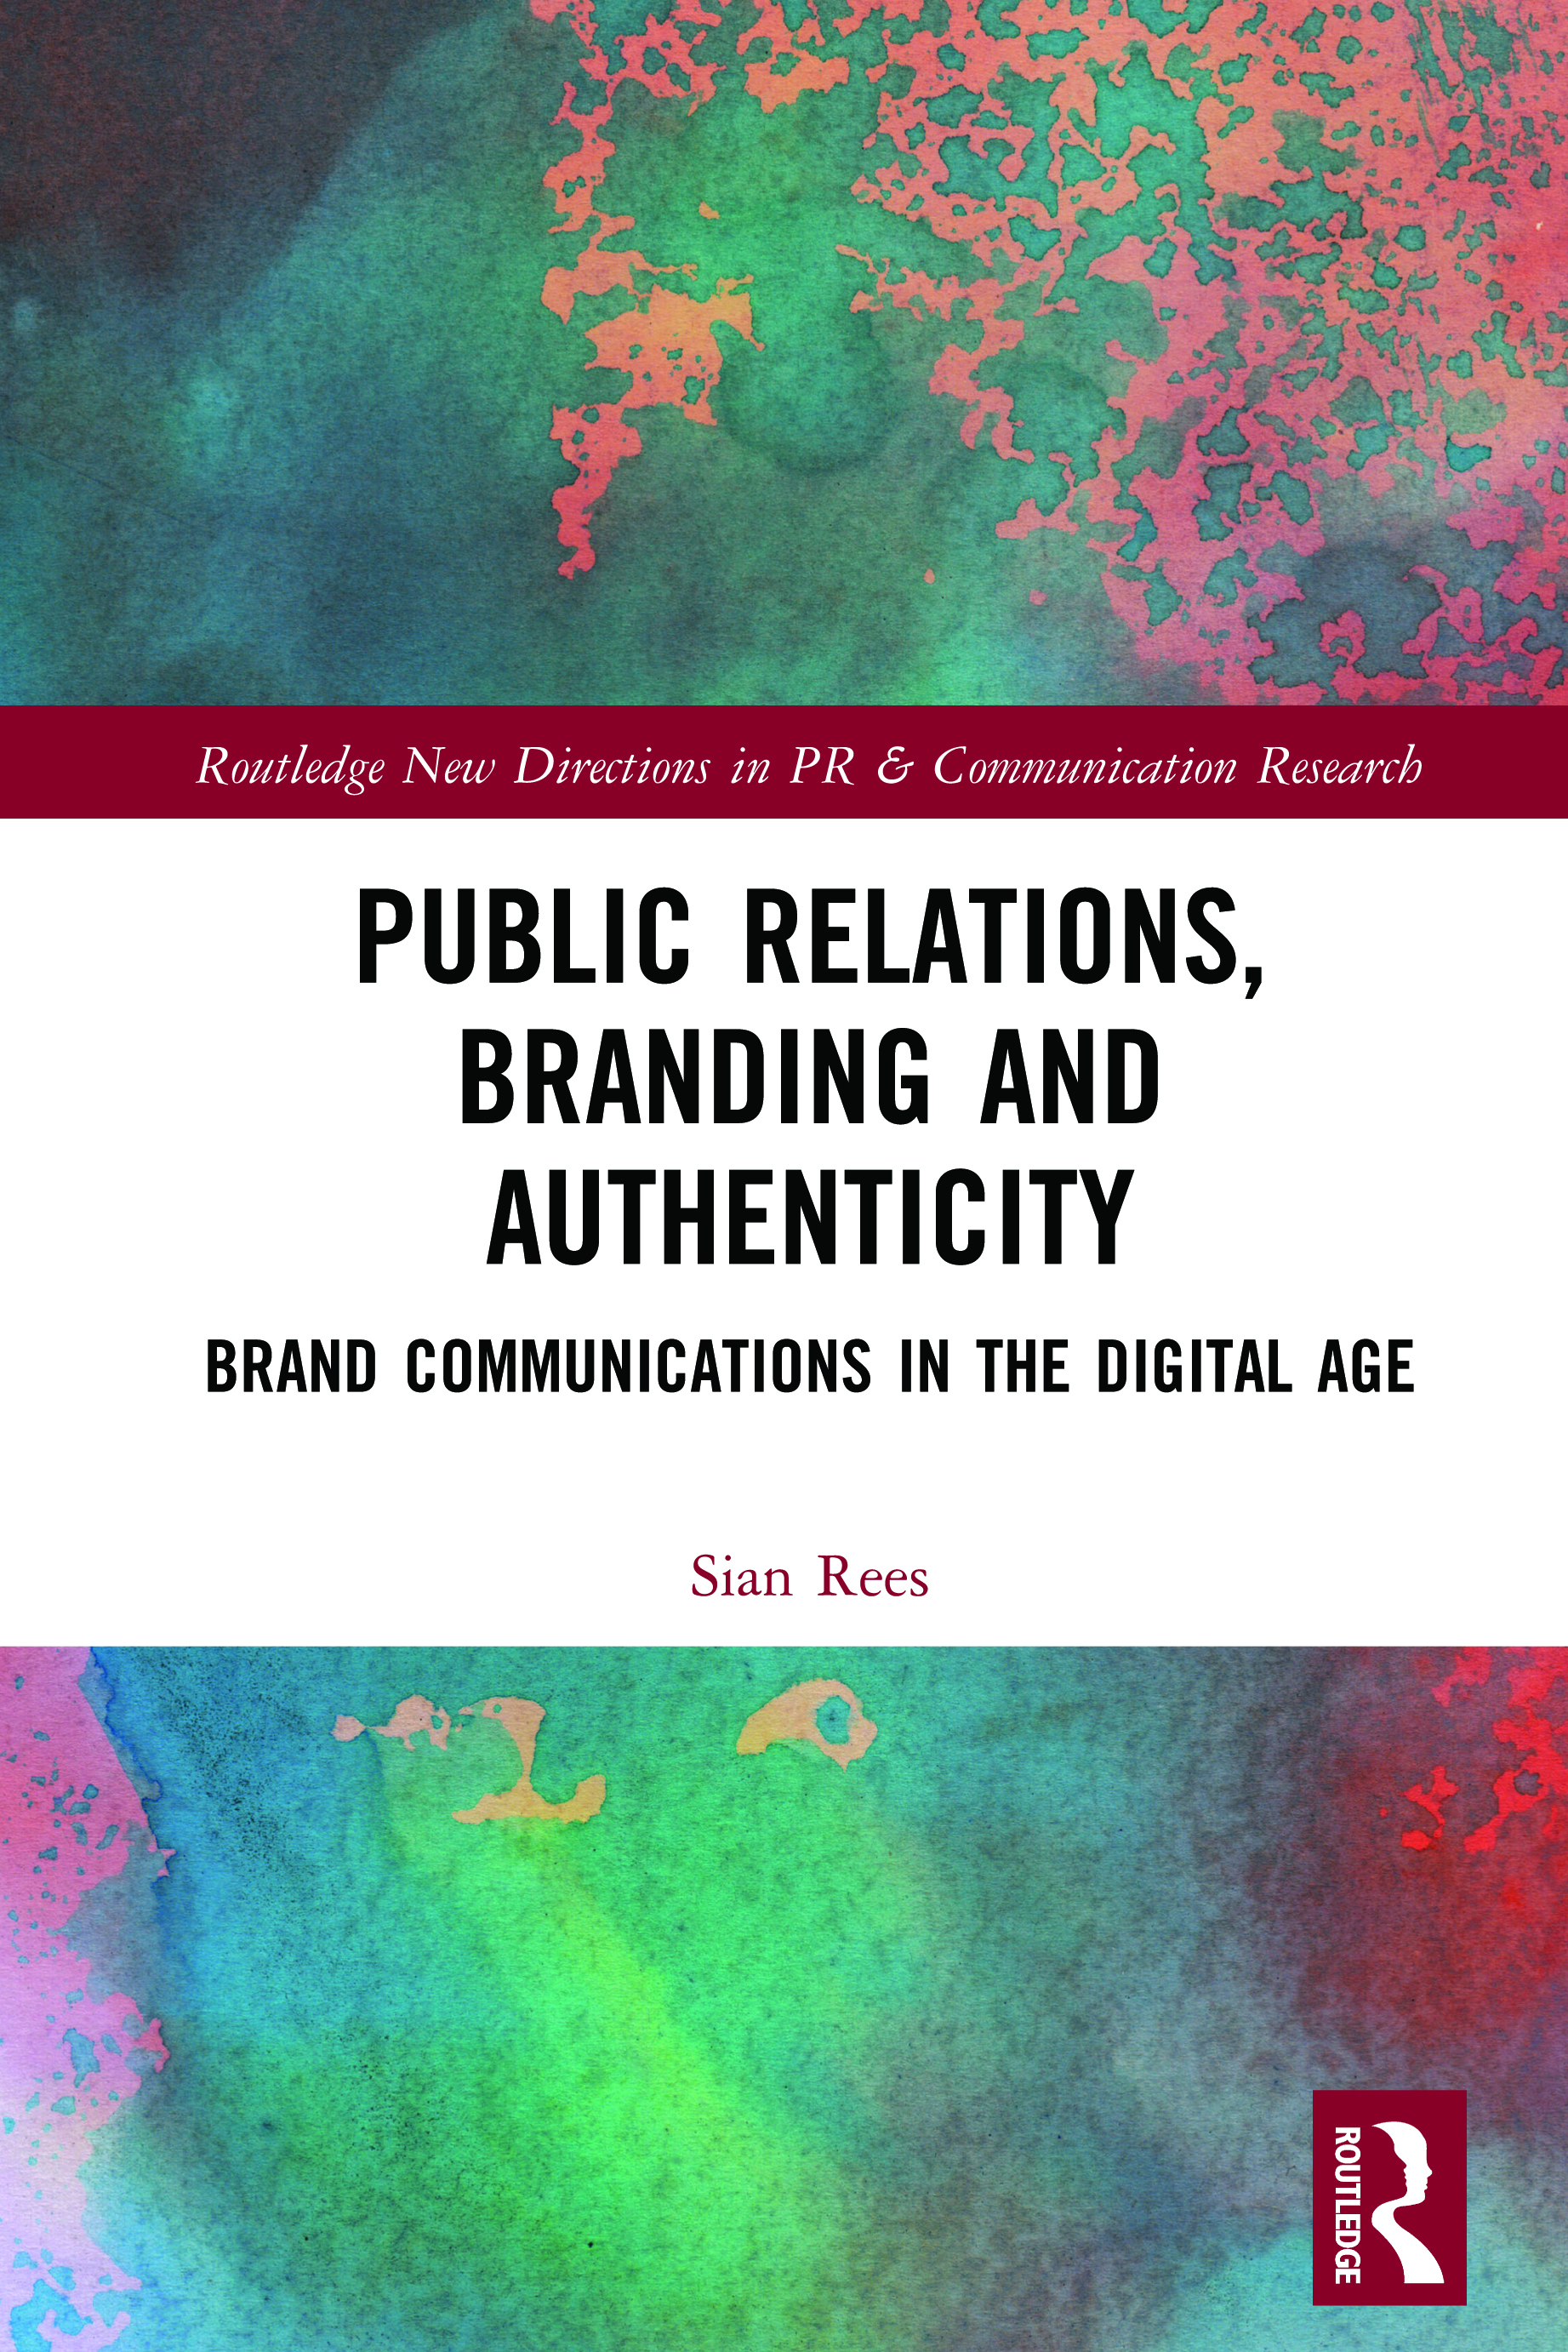 Public Relations, Branding and Authenticity: Brand Communications in the Digital Age book cover